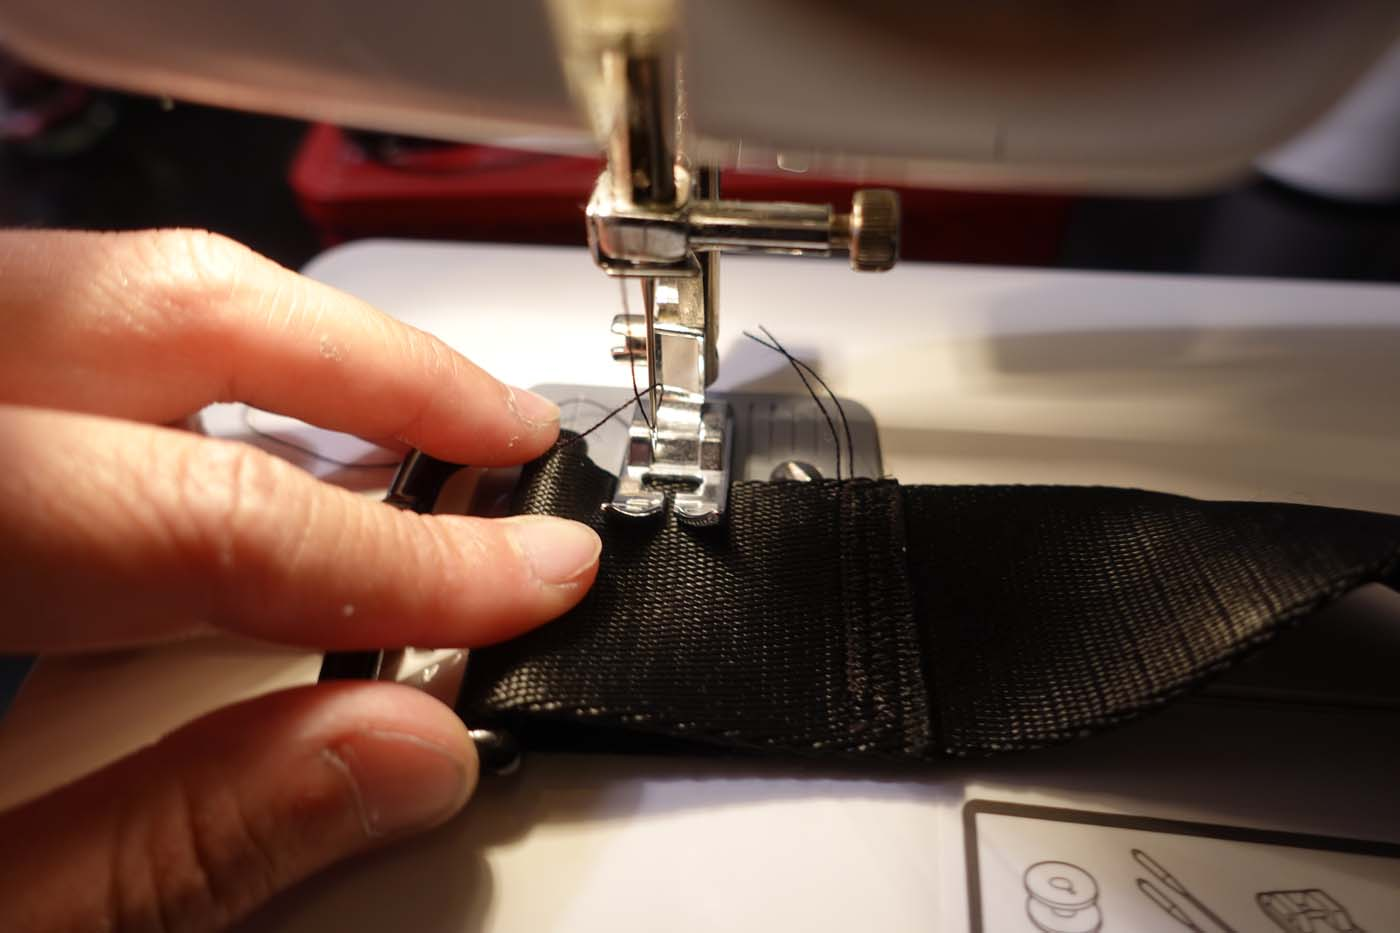 sewing a tri-glide with swivel snaps to make a strap